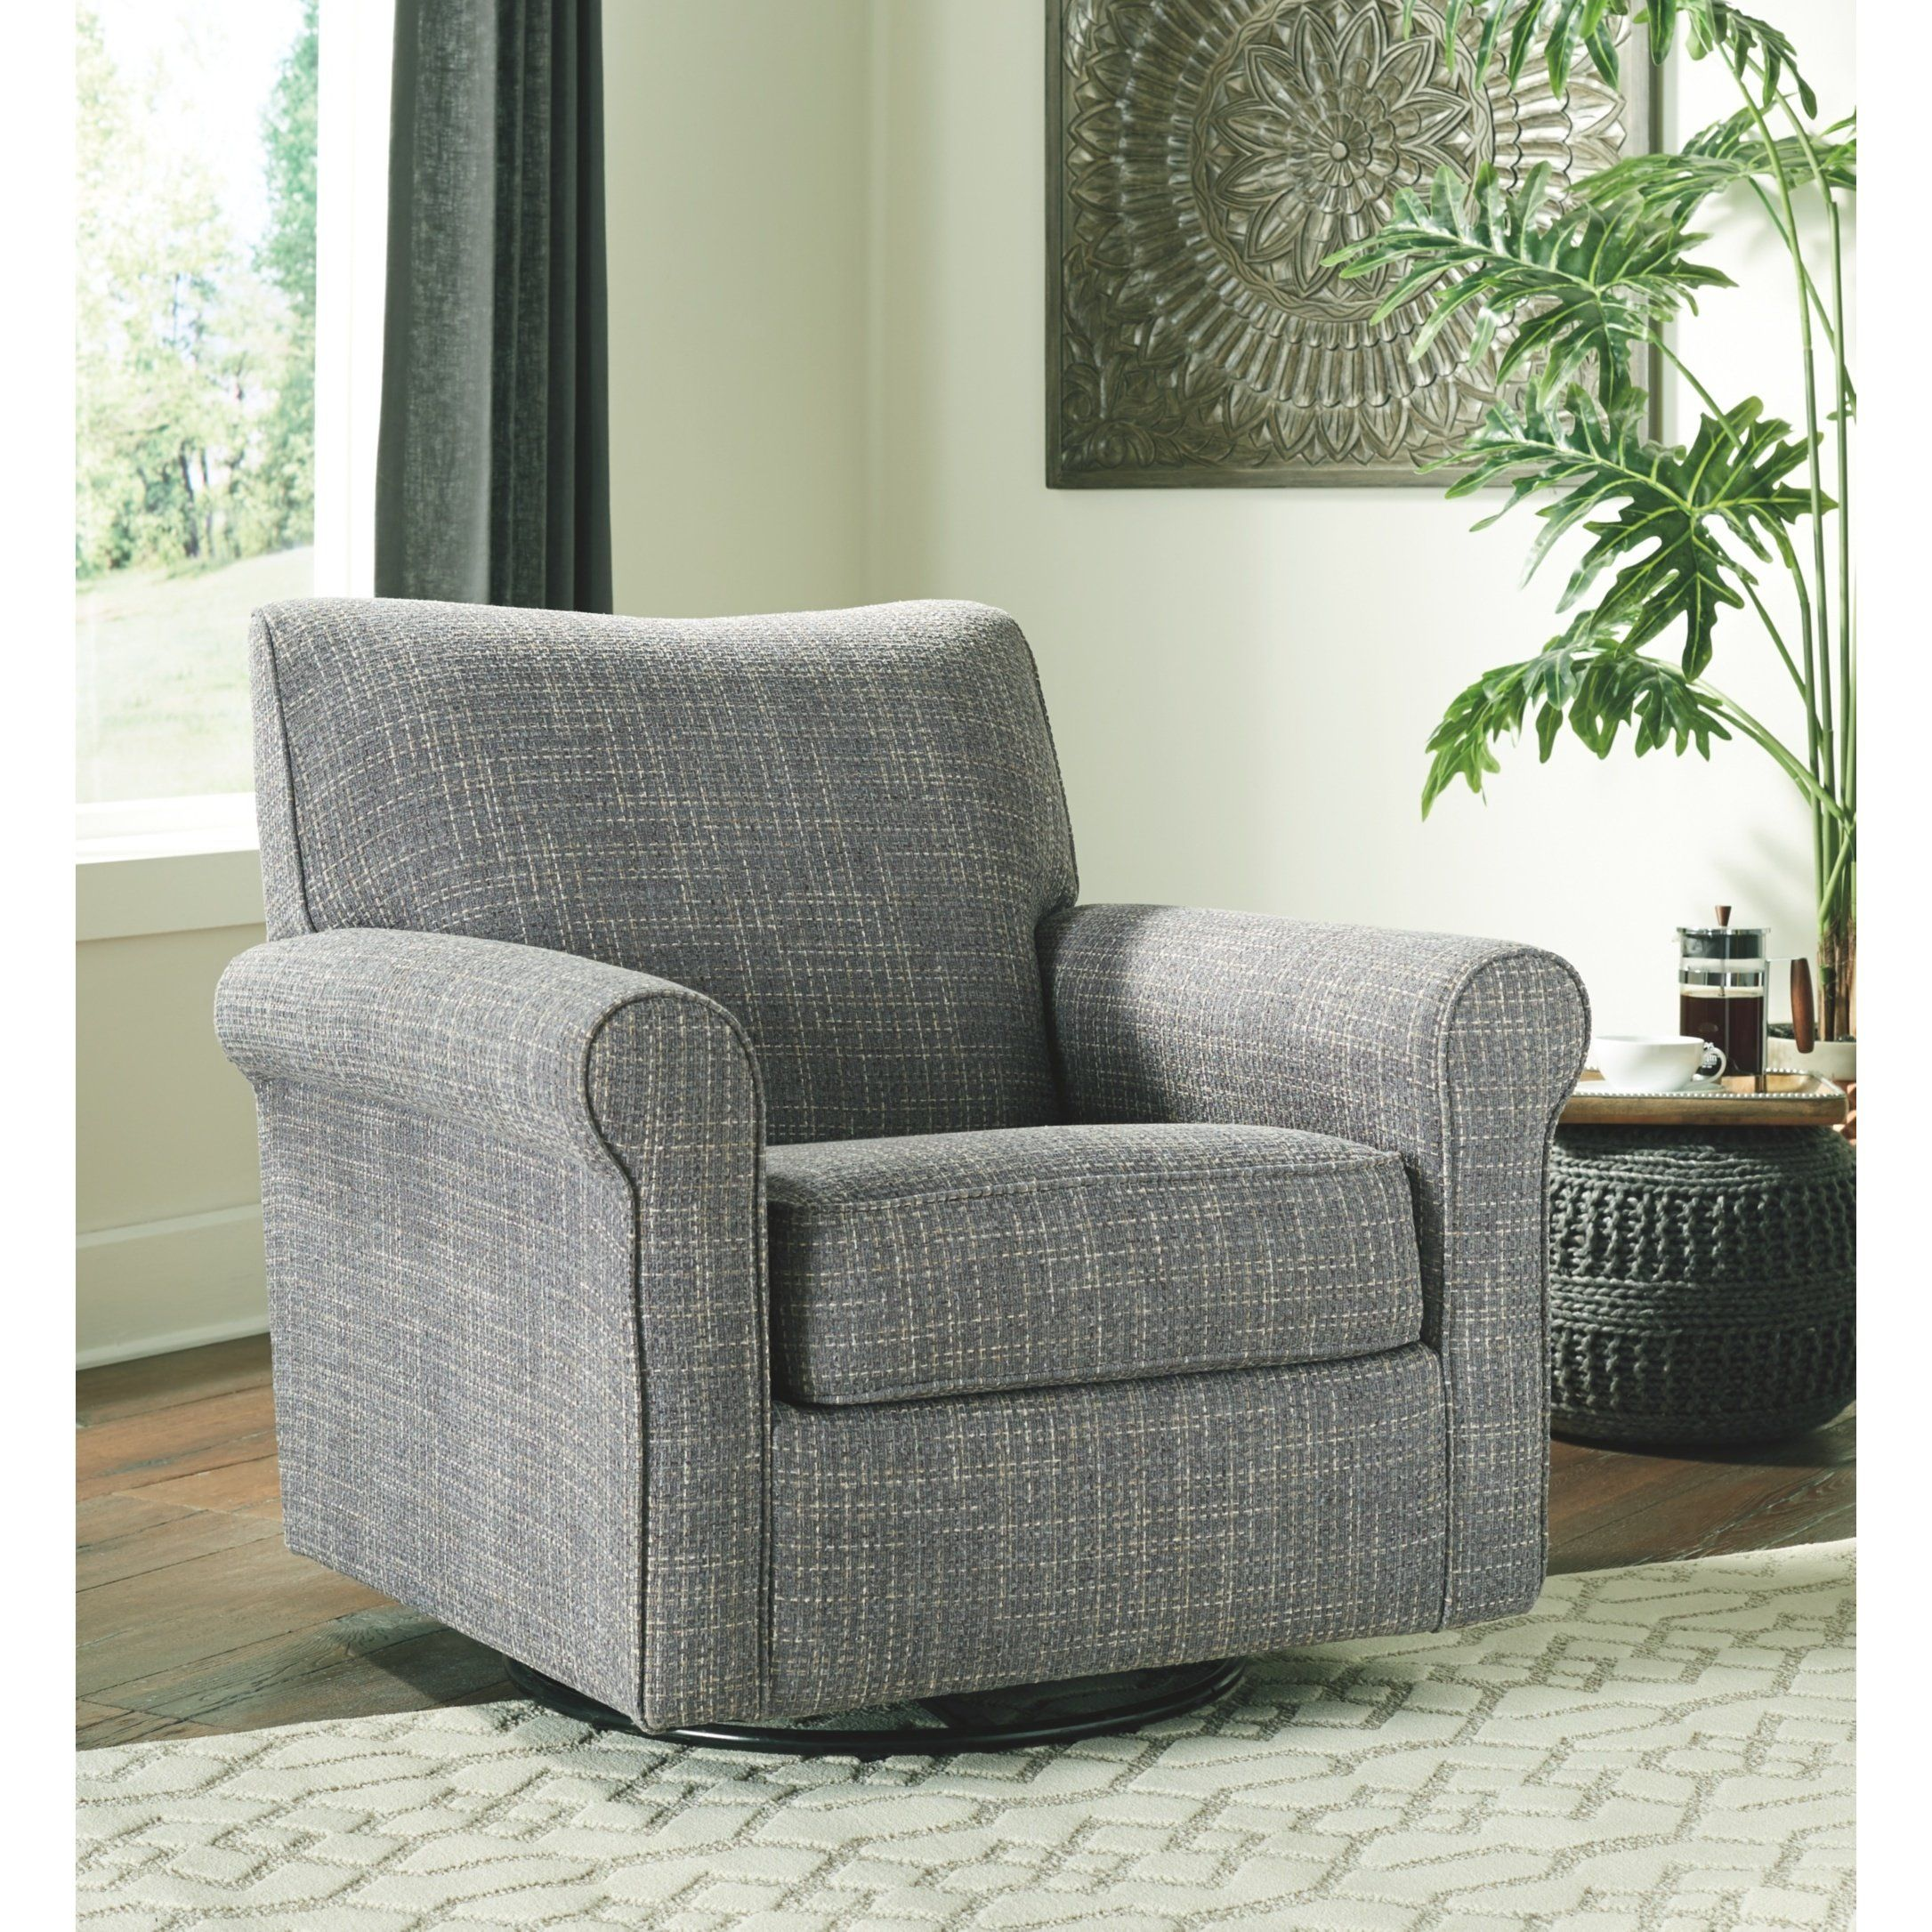 Renley Swivel Glider Accent Chair Grey Signature Design By